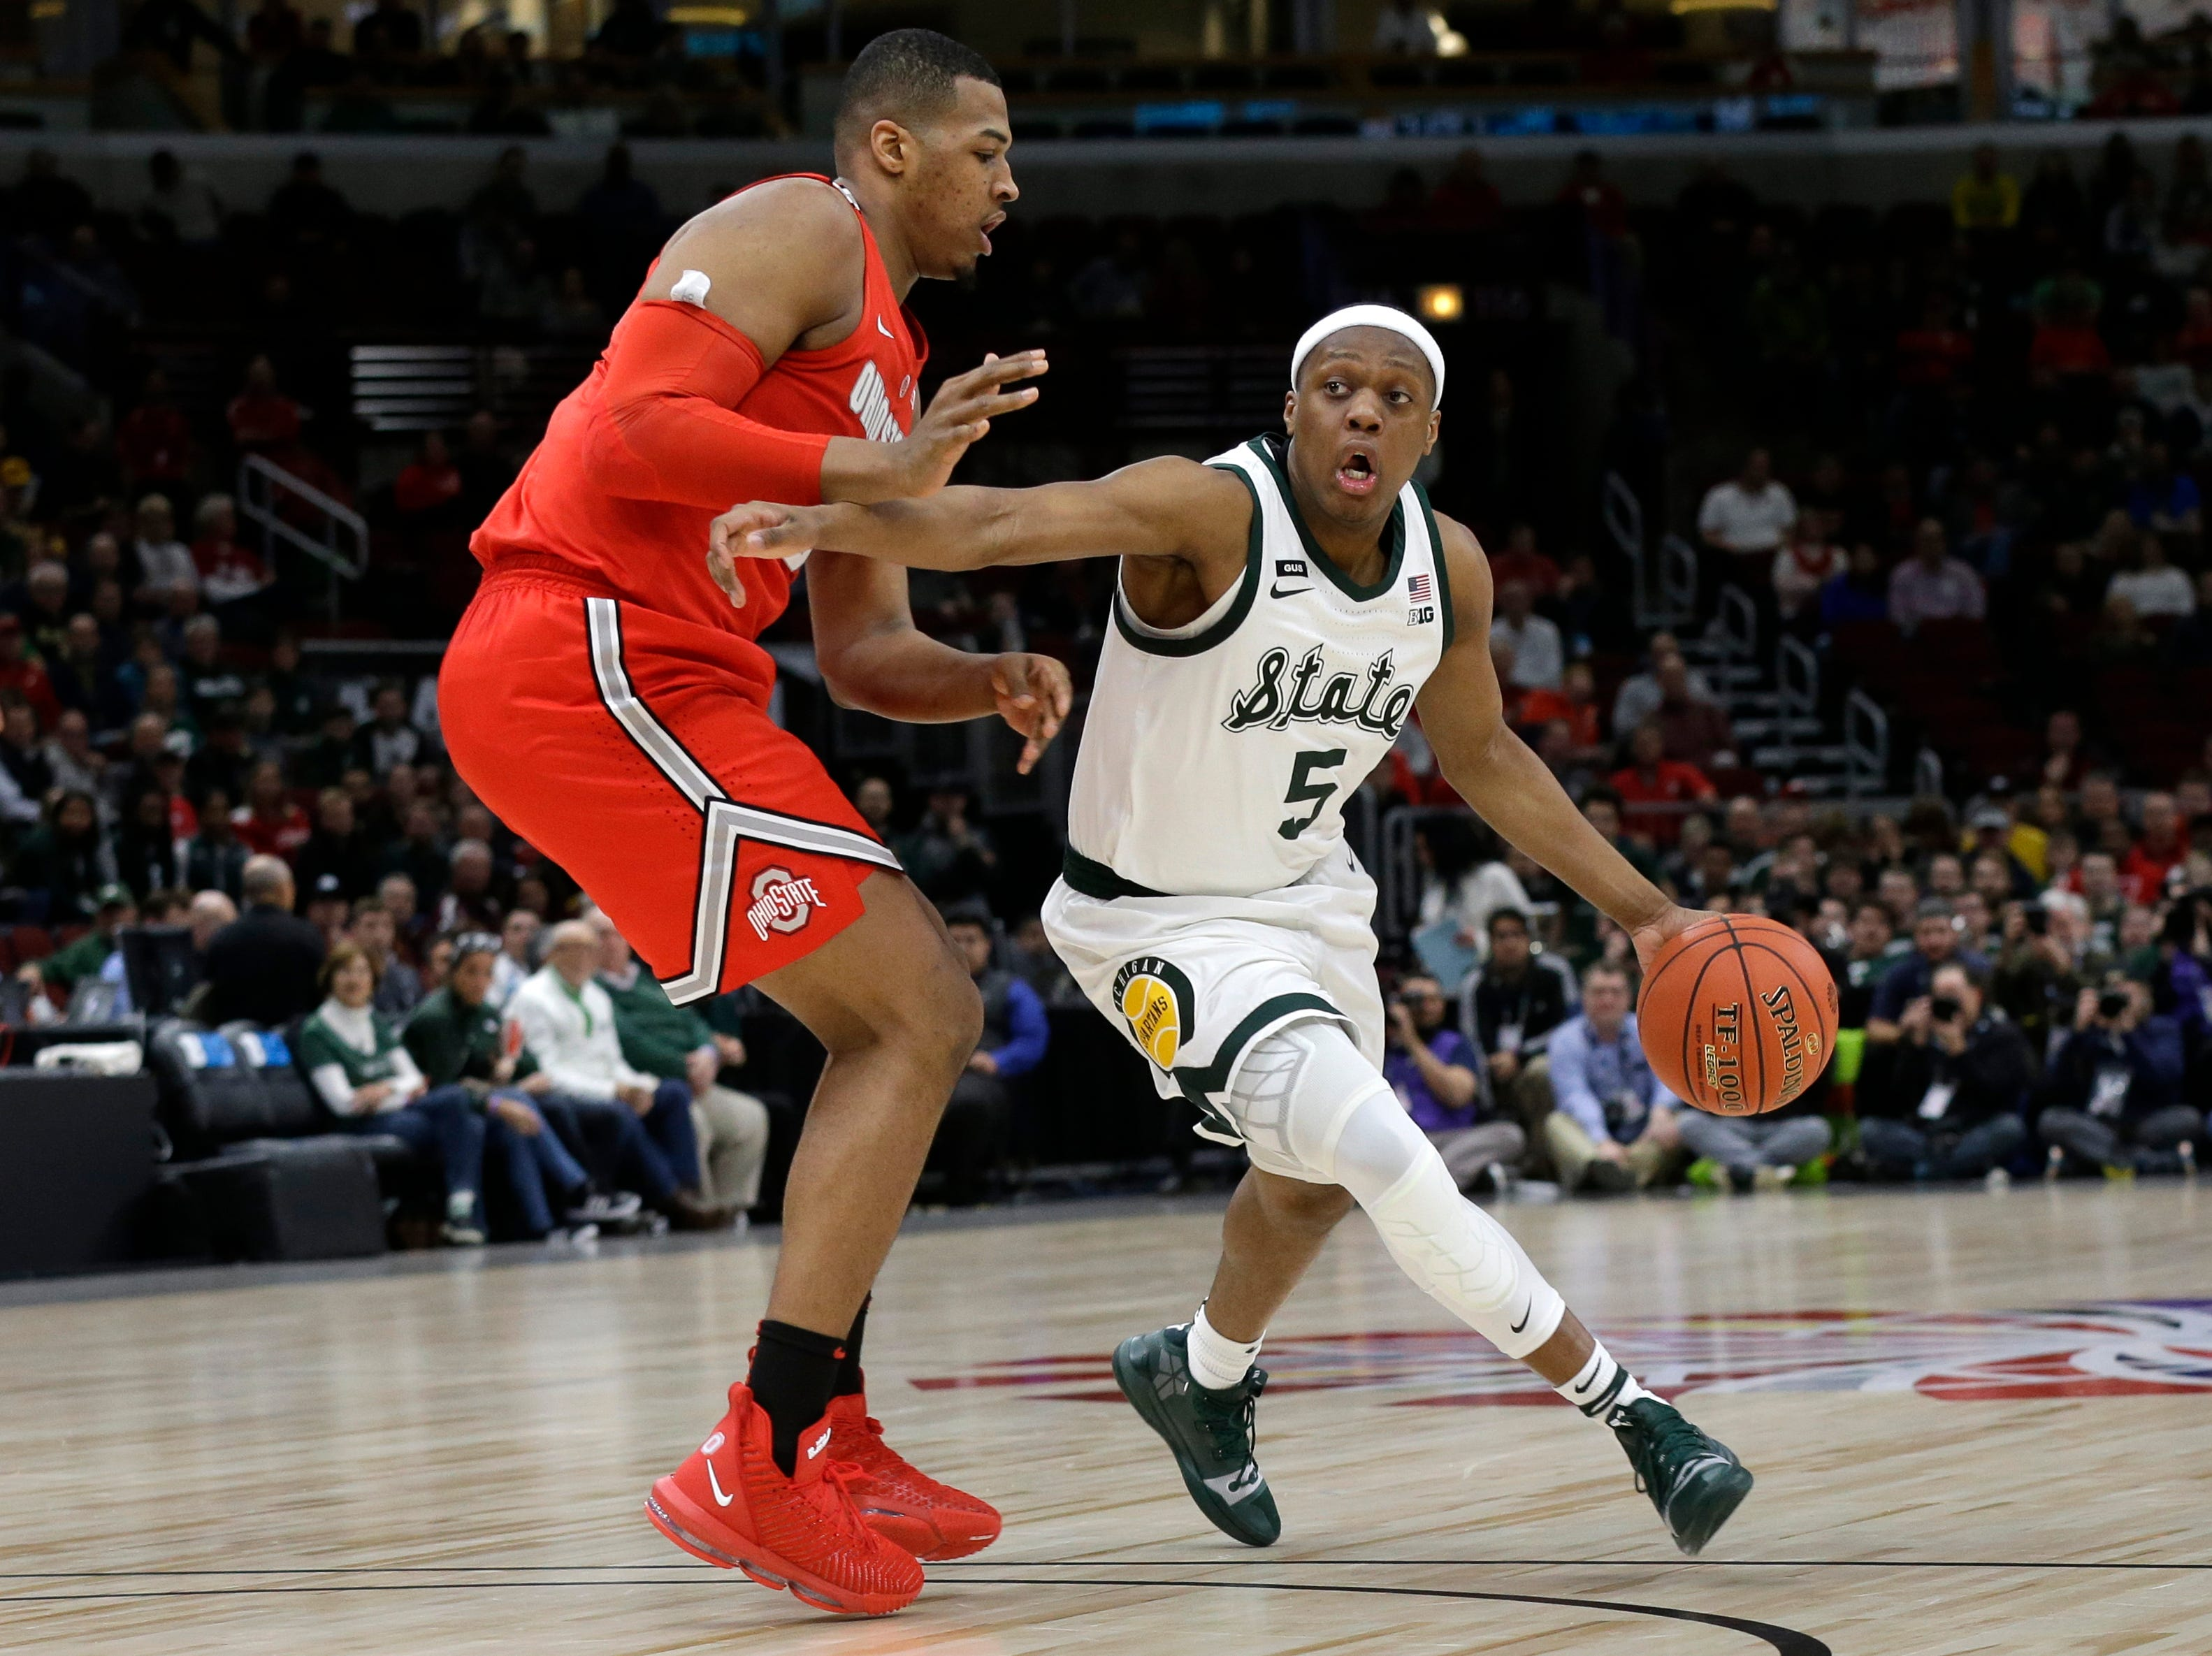 Michigan State's Cassius Winston (5) drives against Ohio State's Kaleb Wesson during the first half.